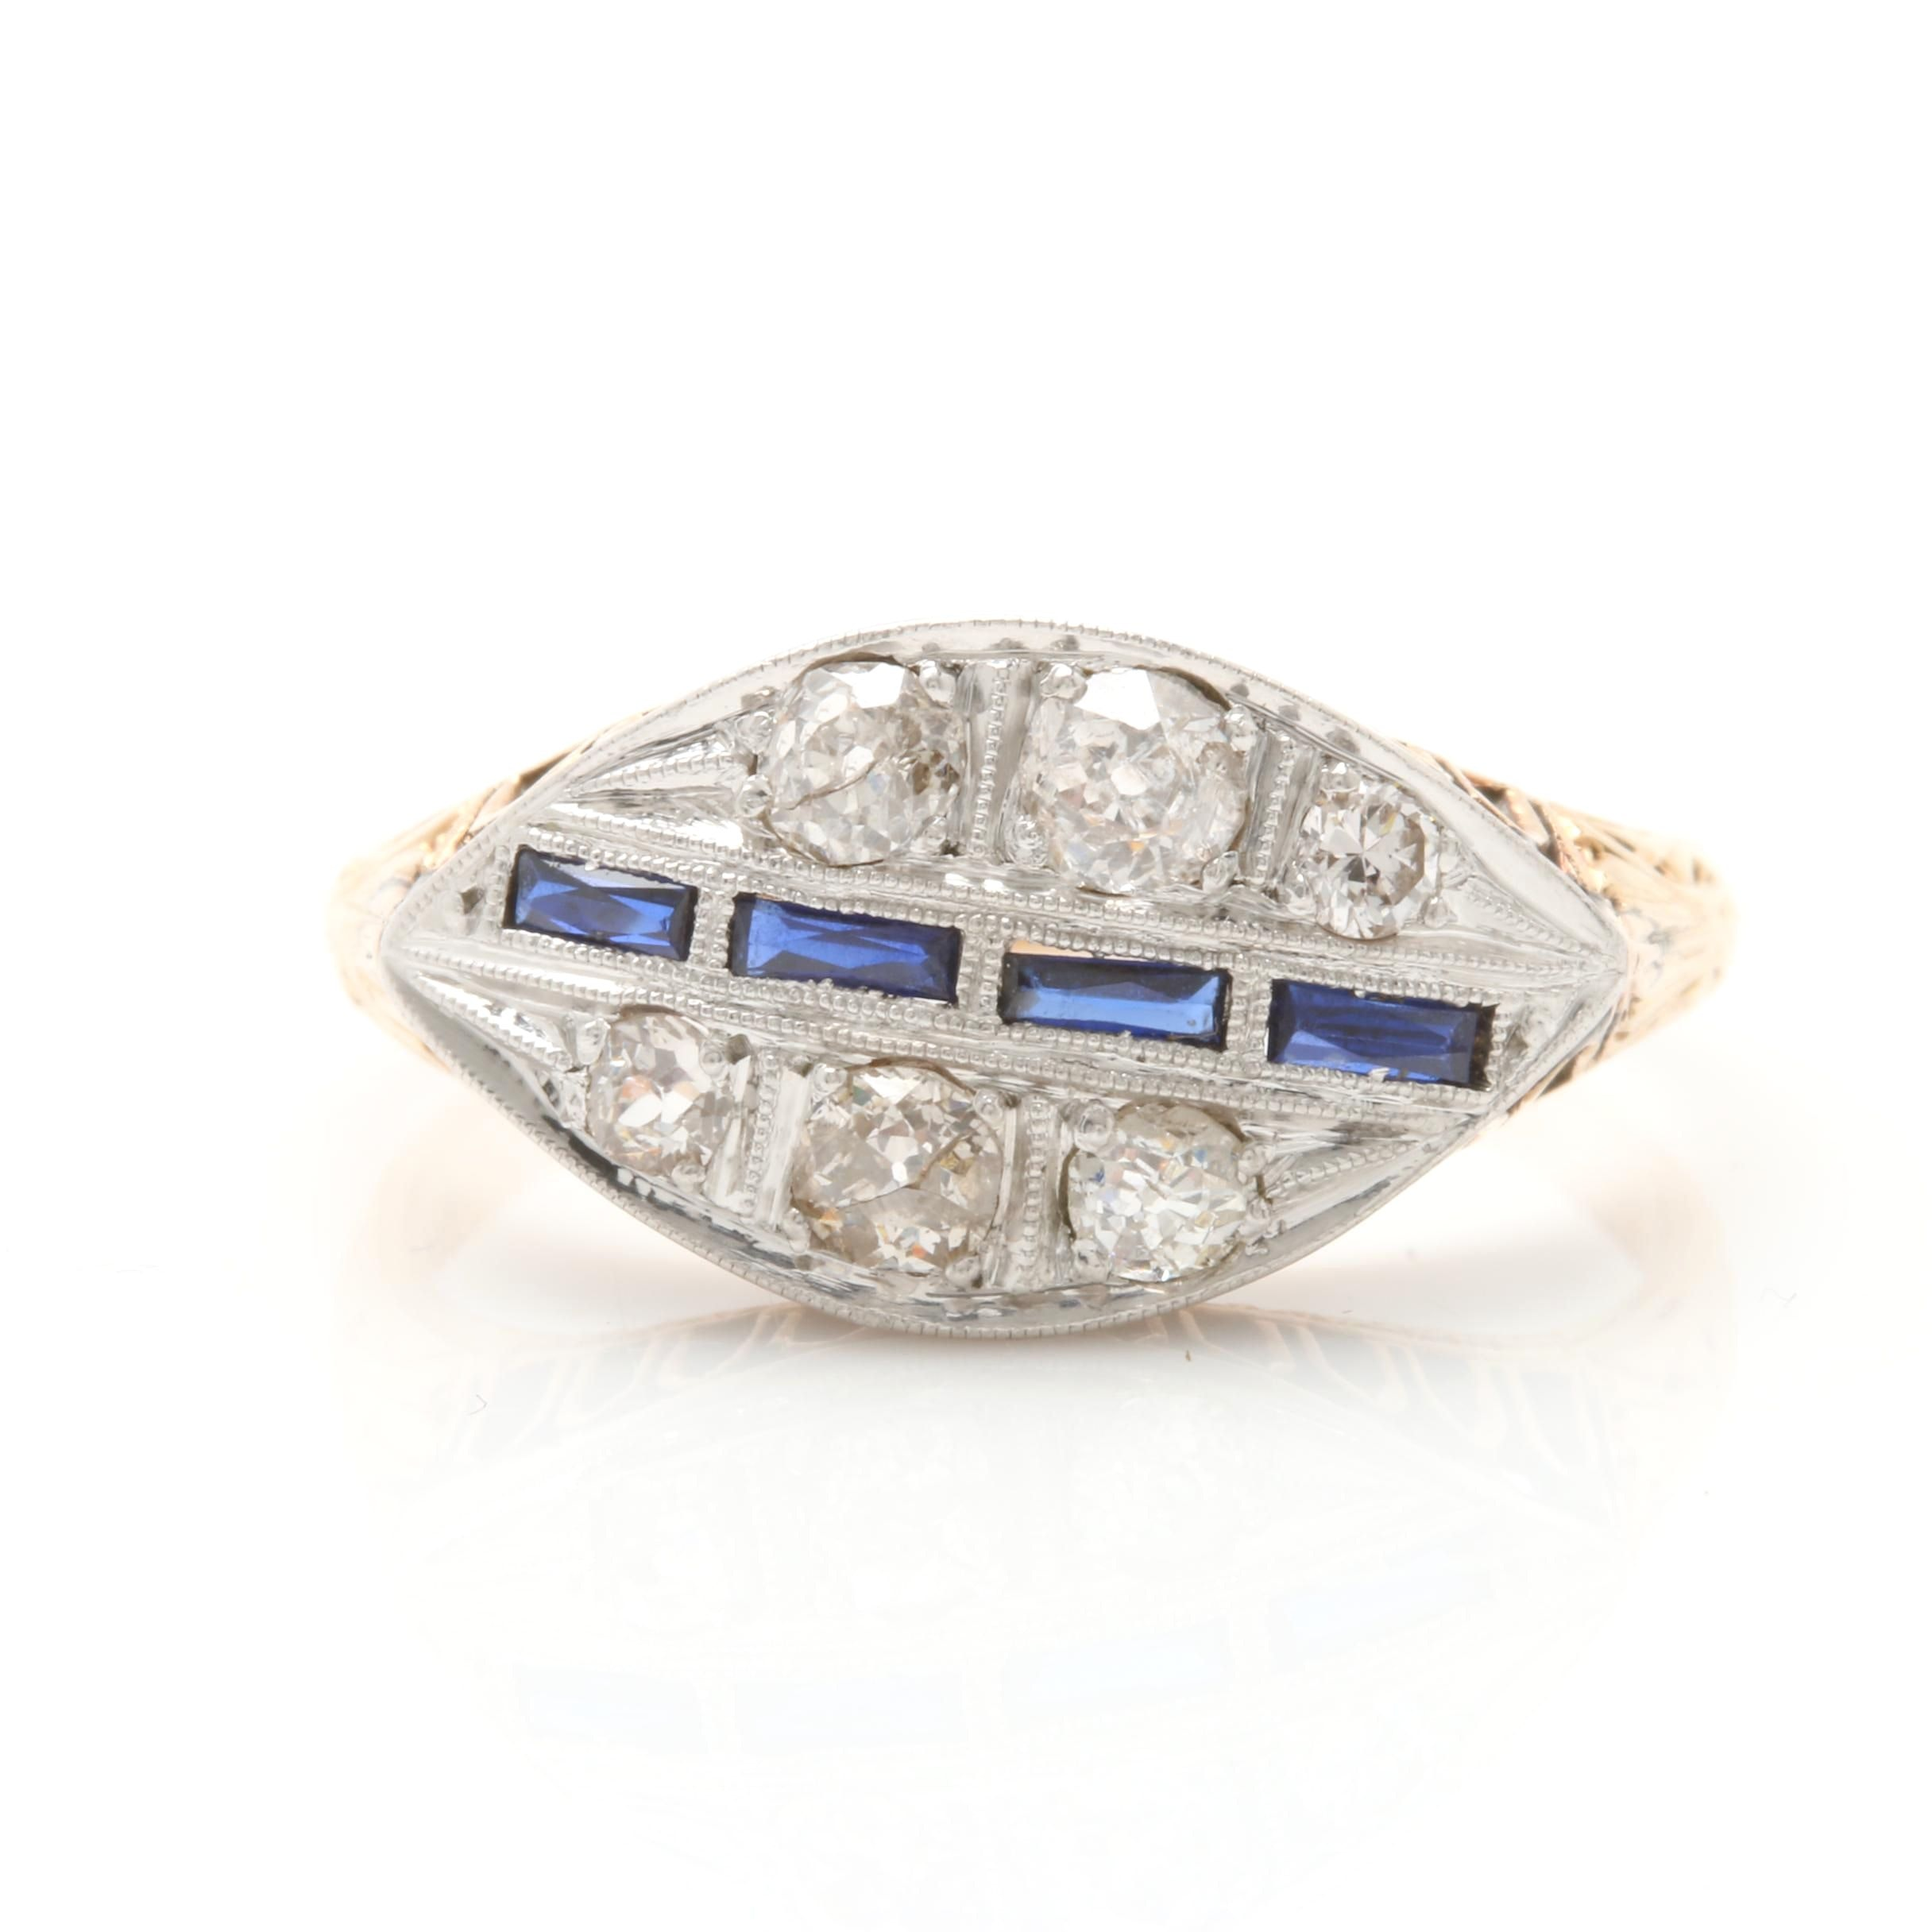 Art Deco Korbin Bros. Platinum and 14K Gold Diamond and Synthetic Sapphire Ring